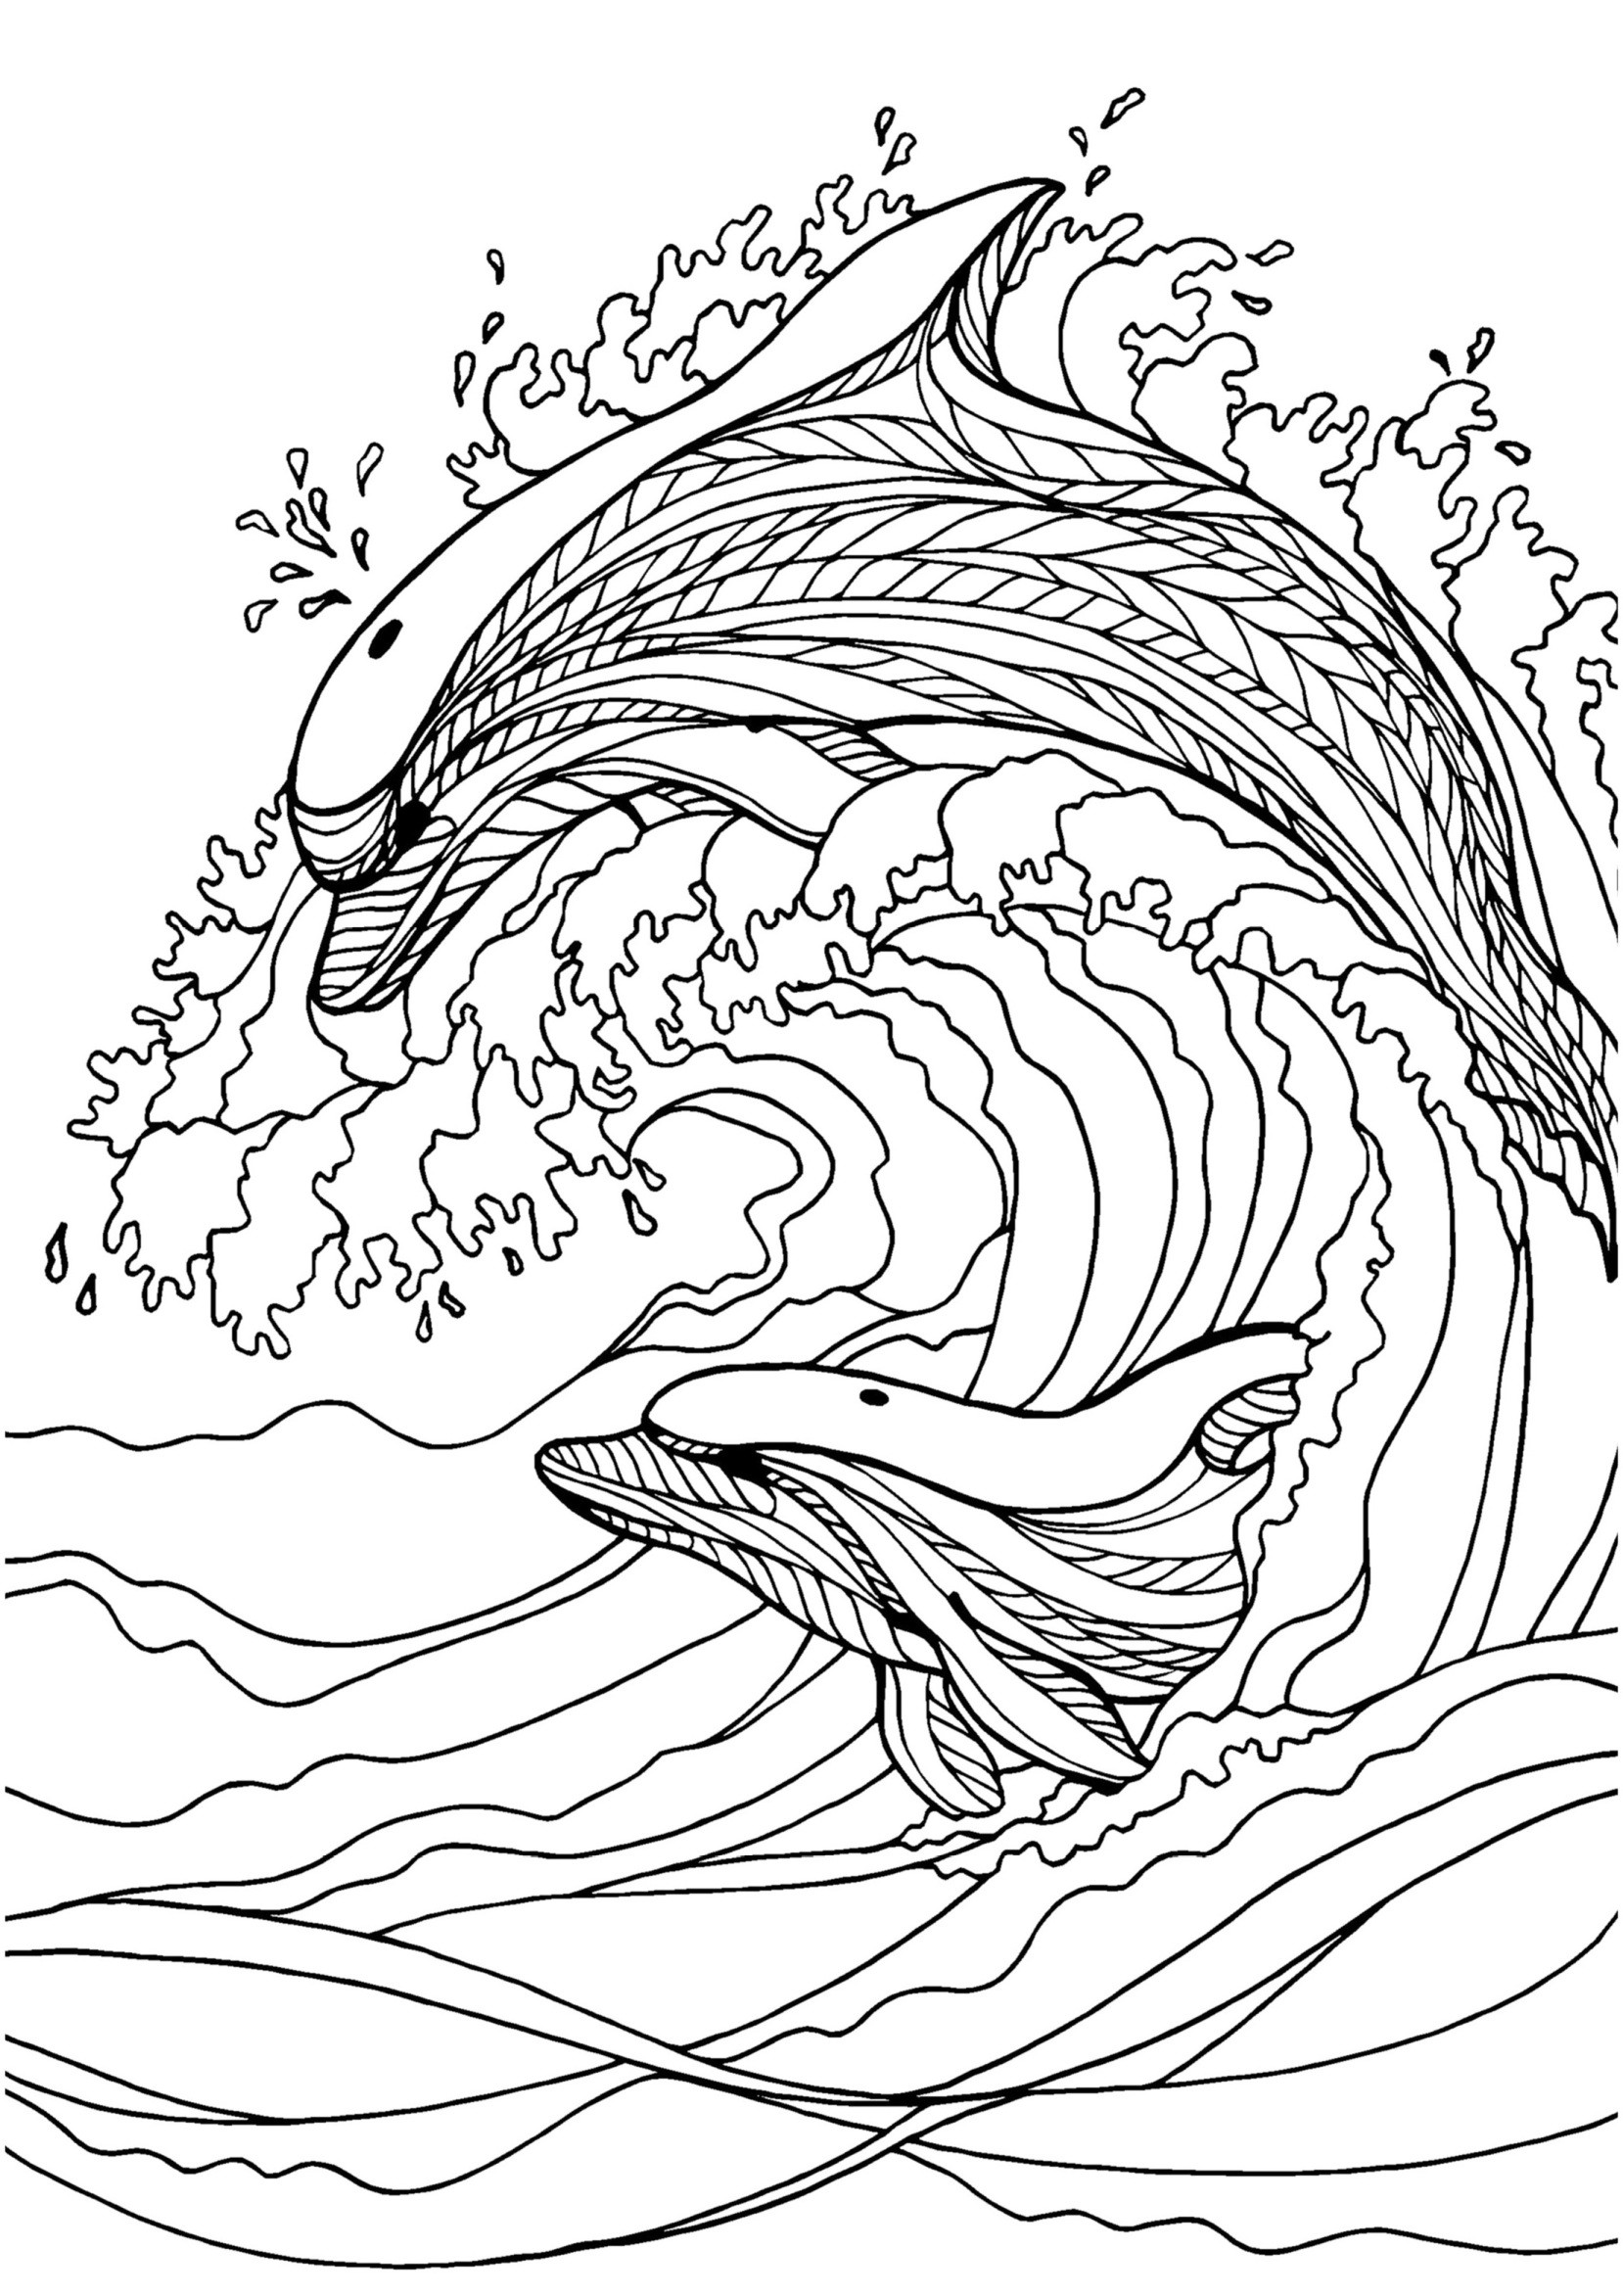 dolphin coloring pages free printable dolphin coloring page adult coloring sheet nautical pages printable coloring dolphin free